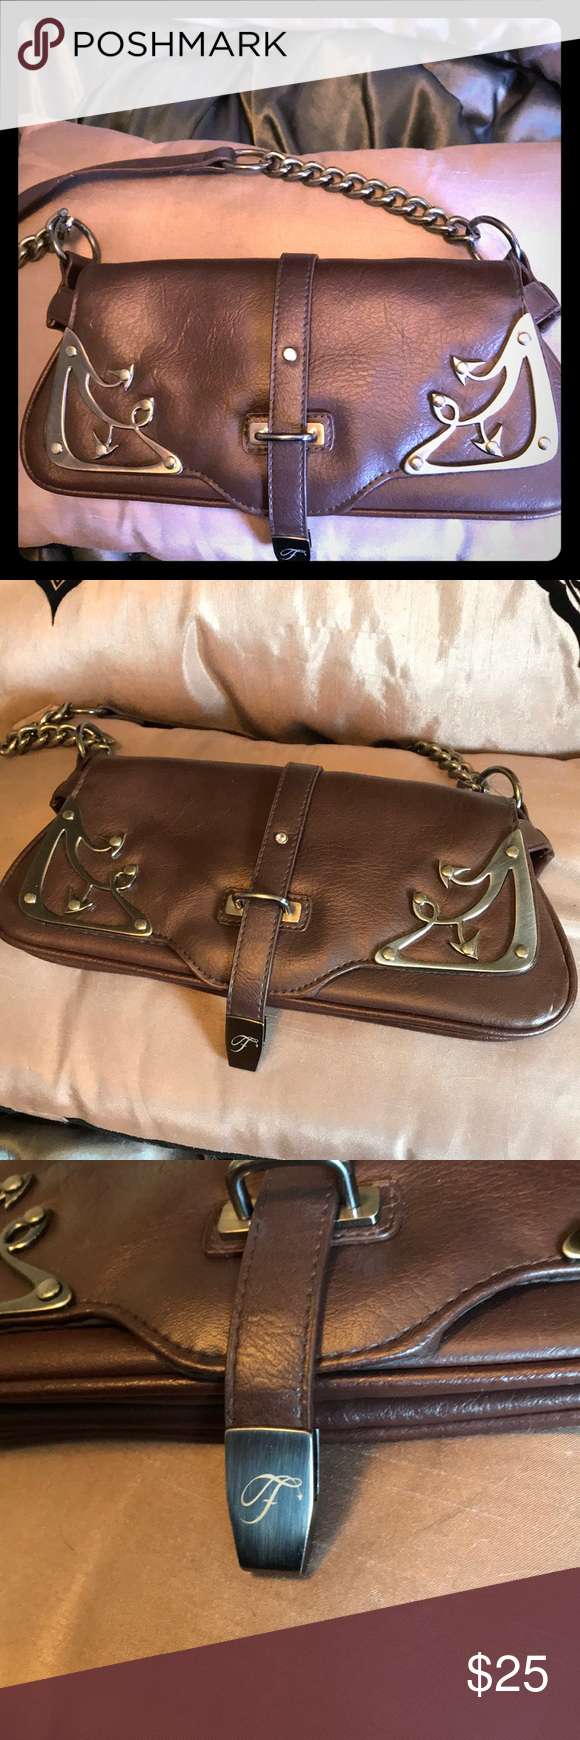 By eve fetish handbag